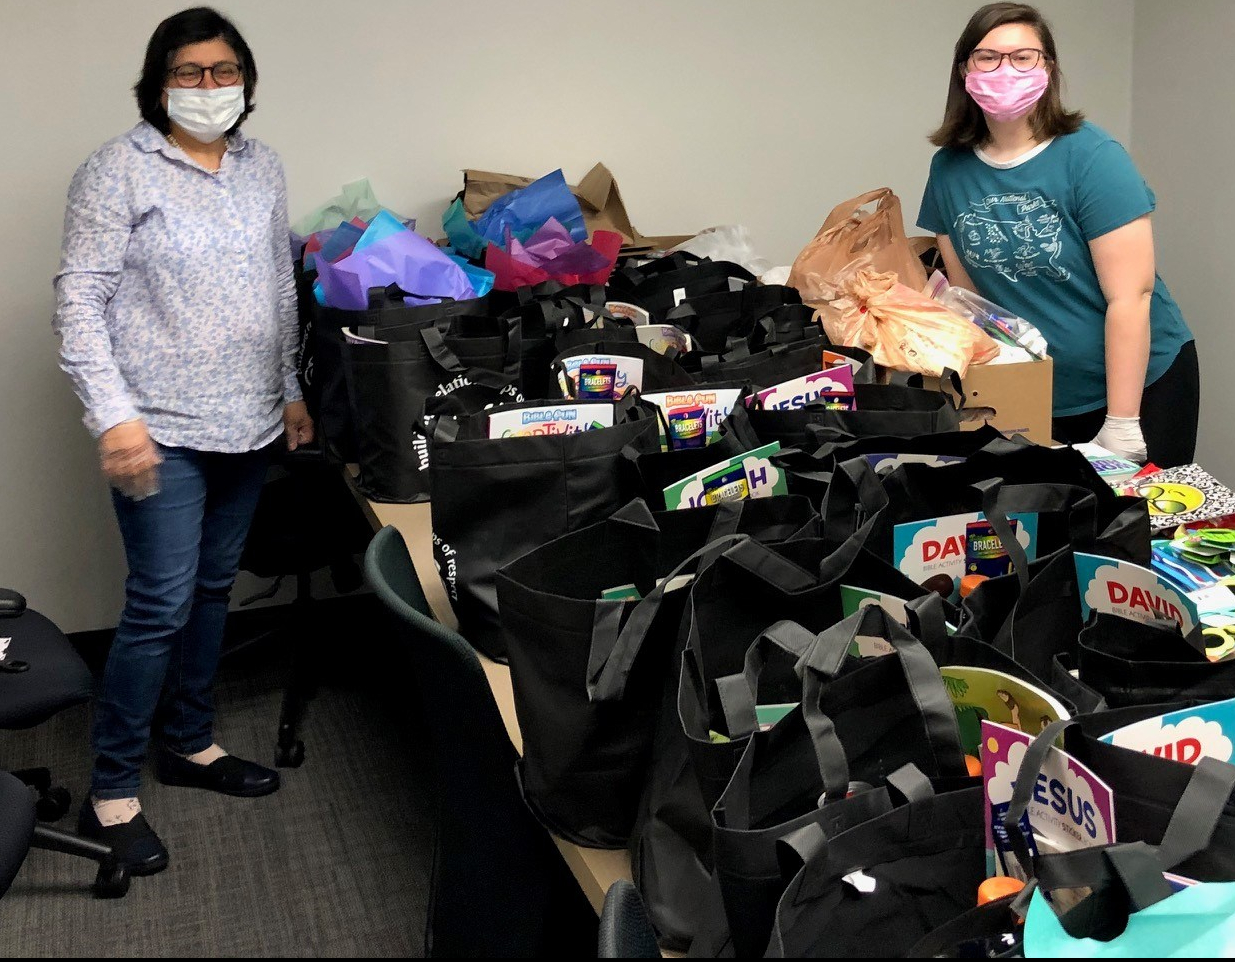 Two light-skinned women in surgical masks stand next to a table covered in care packages and supplies.